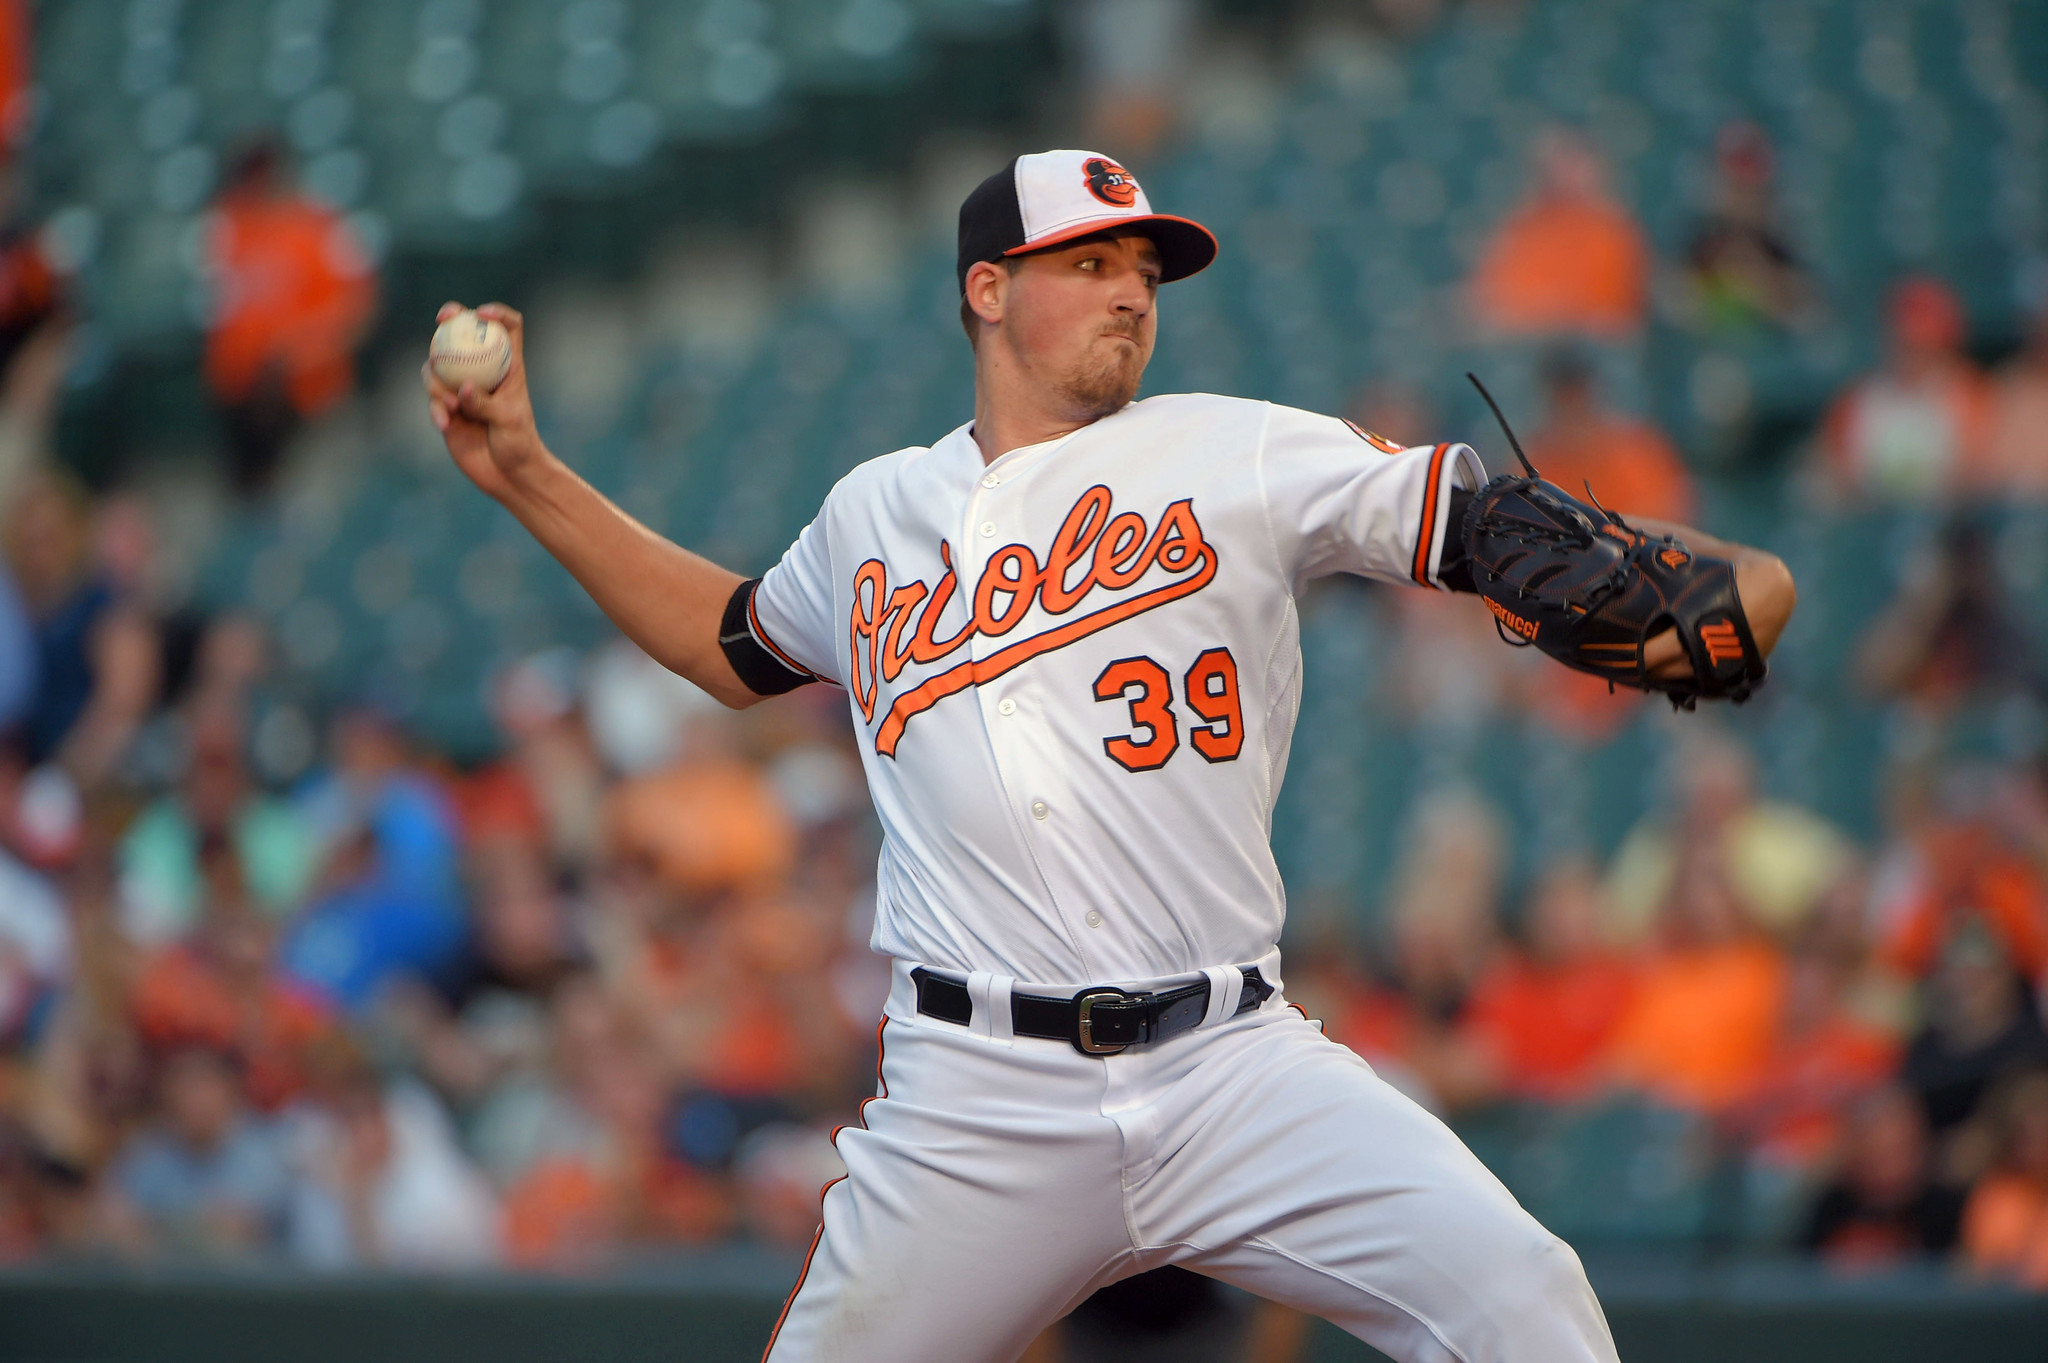 Bal-kevin-gausman-efficient-and-effective-earns-praise-in-win-over-astros-20160818